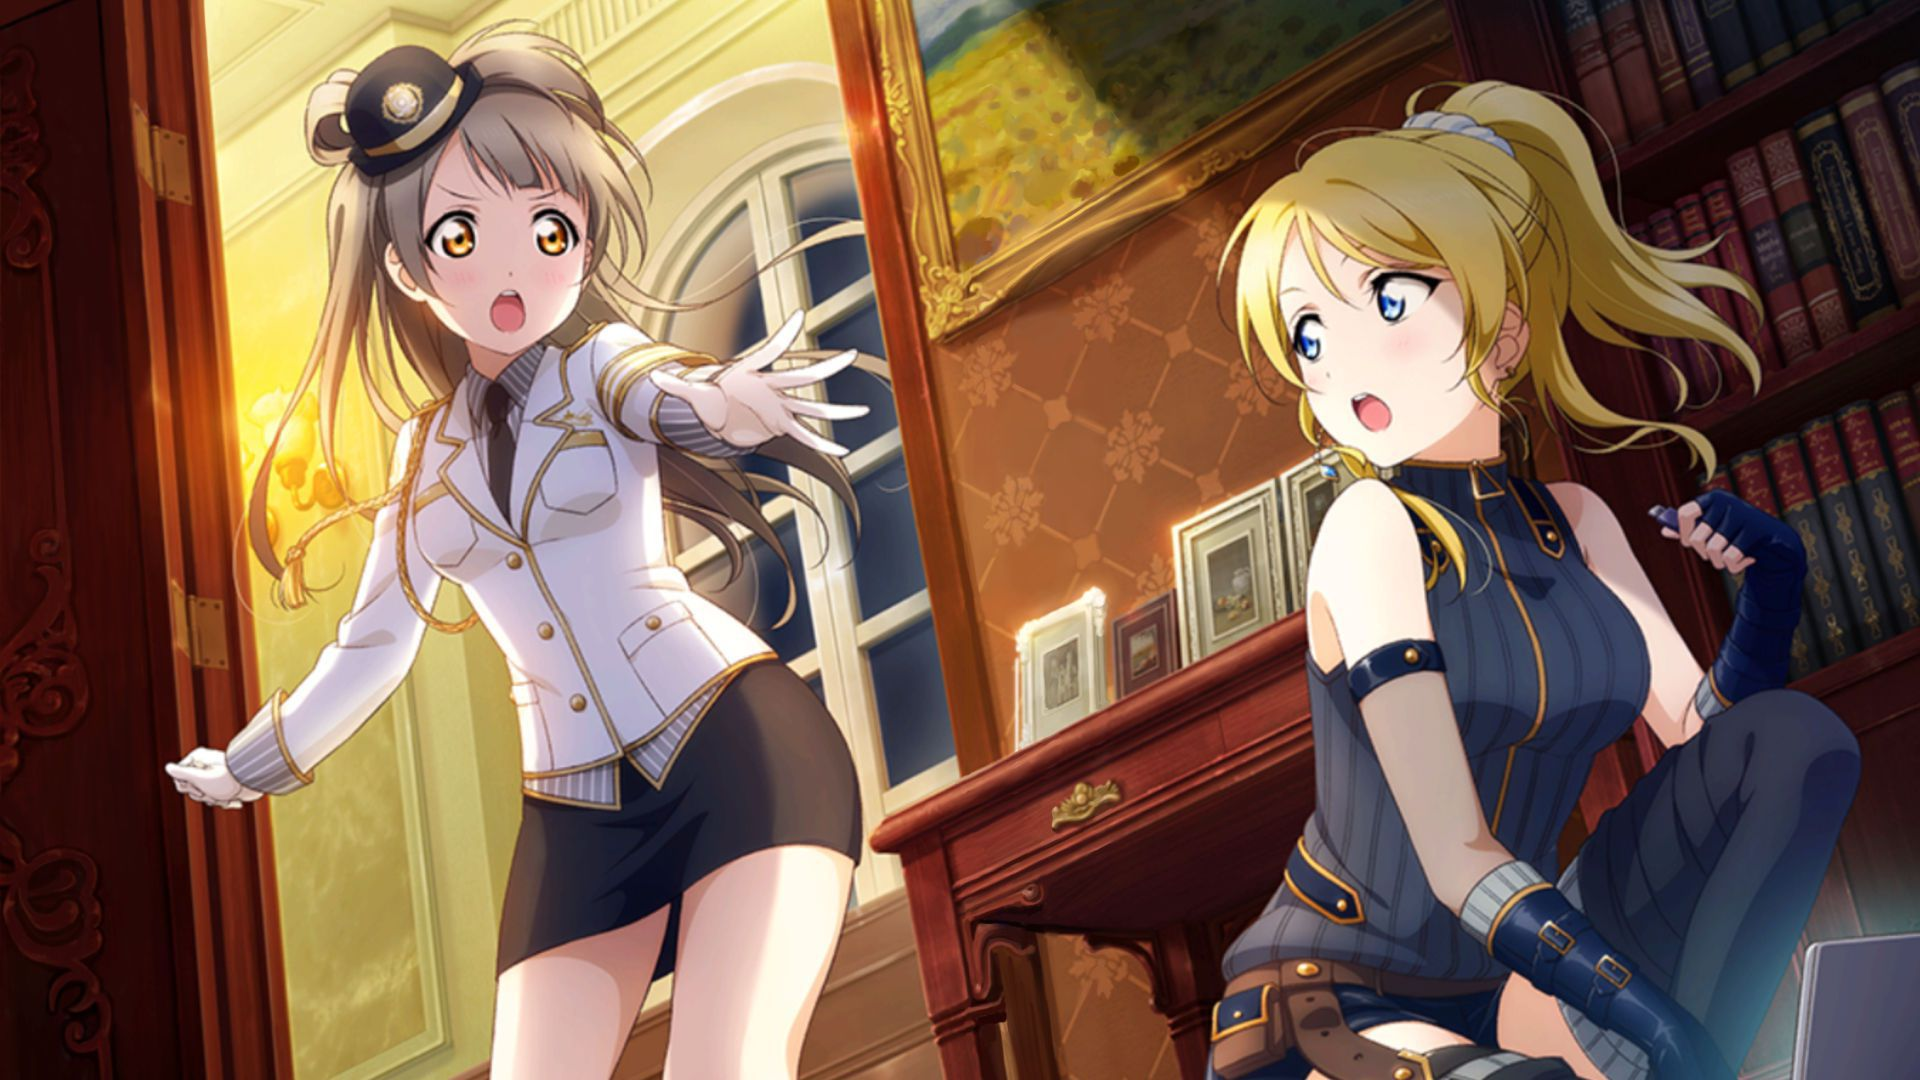 20861_lovelive_PC